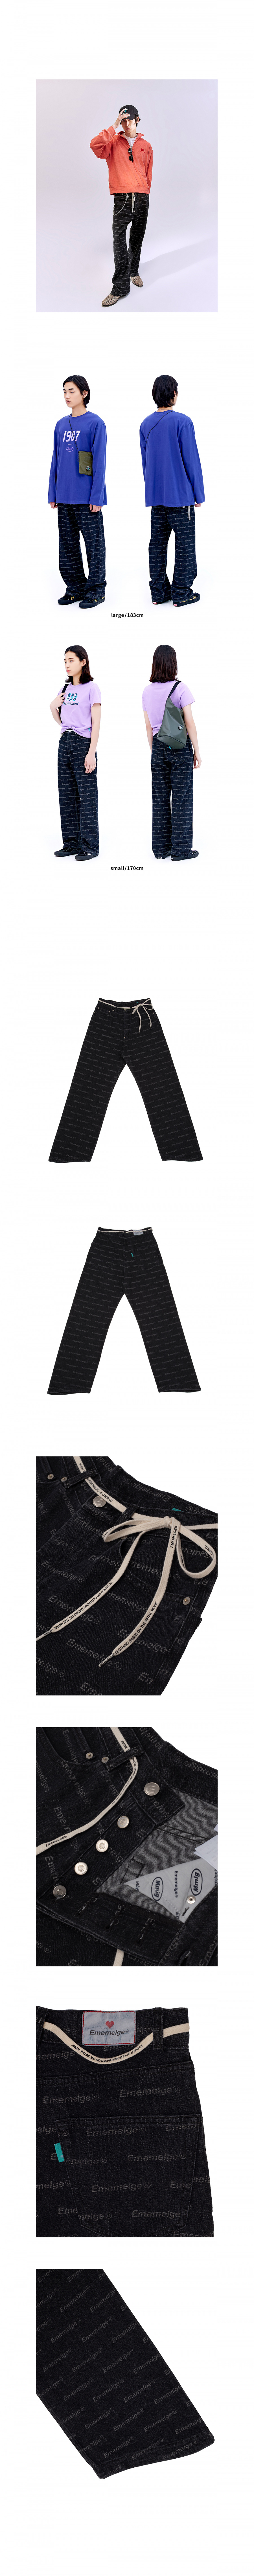 팔칠엠엠(87MM) [Mmlg] EMEMELGE WAVE RELAX JEANS (ALMOST BLACK)